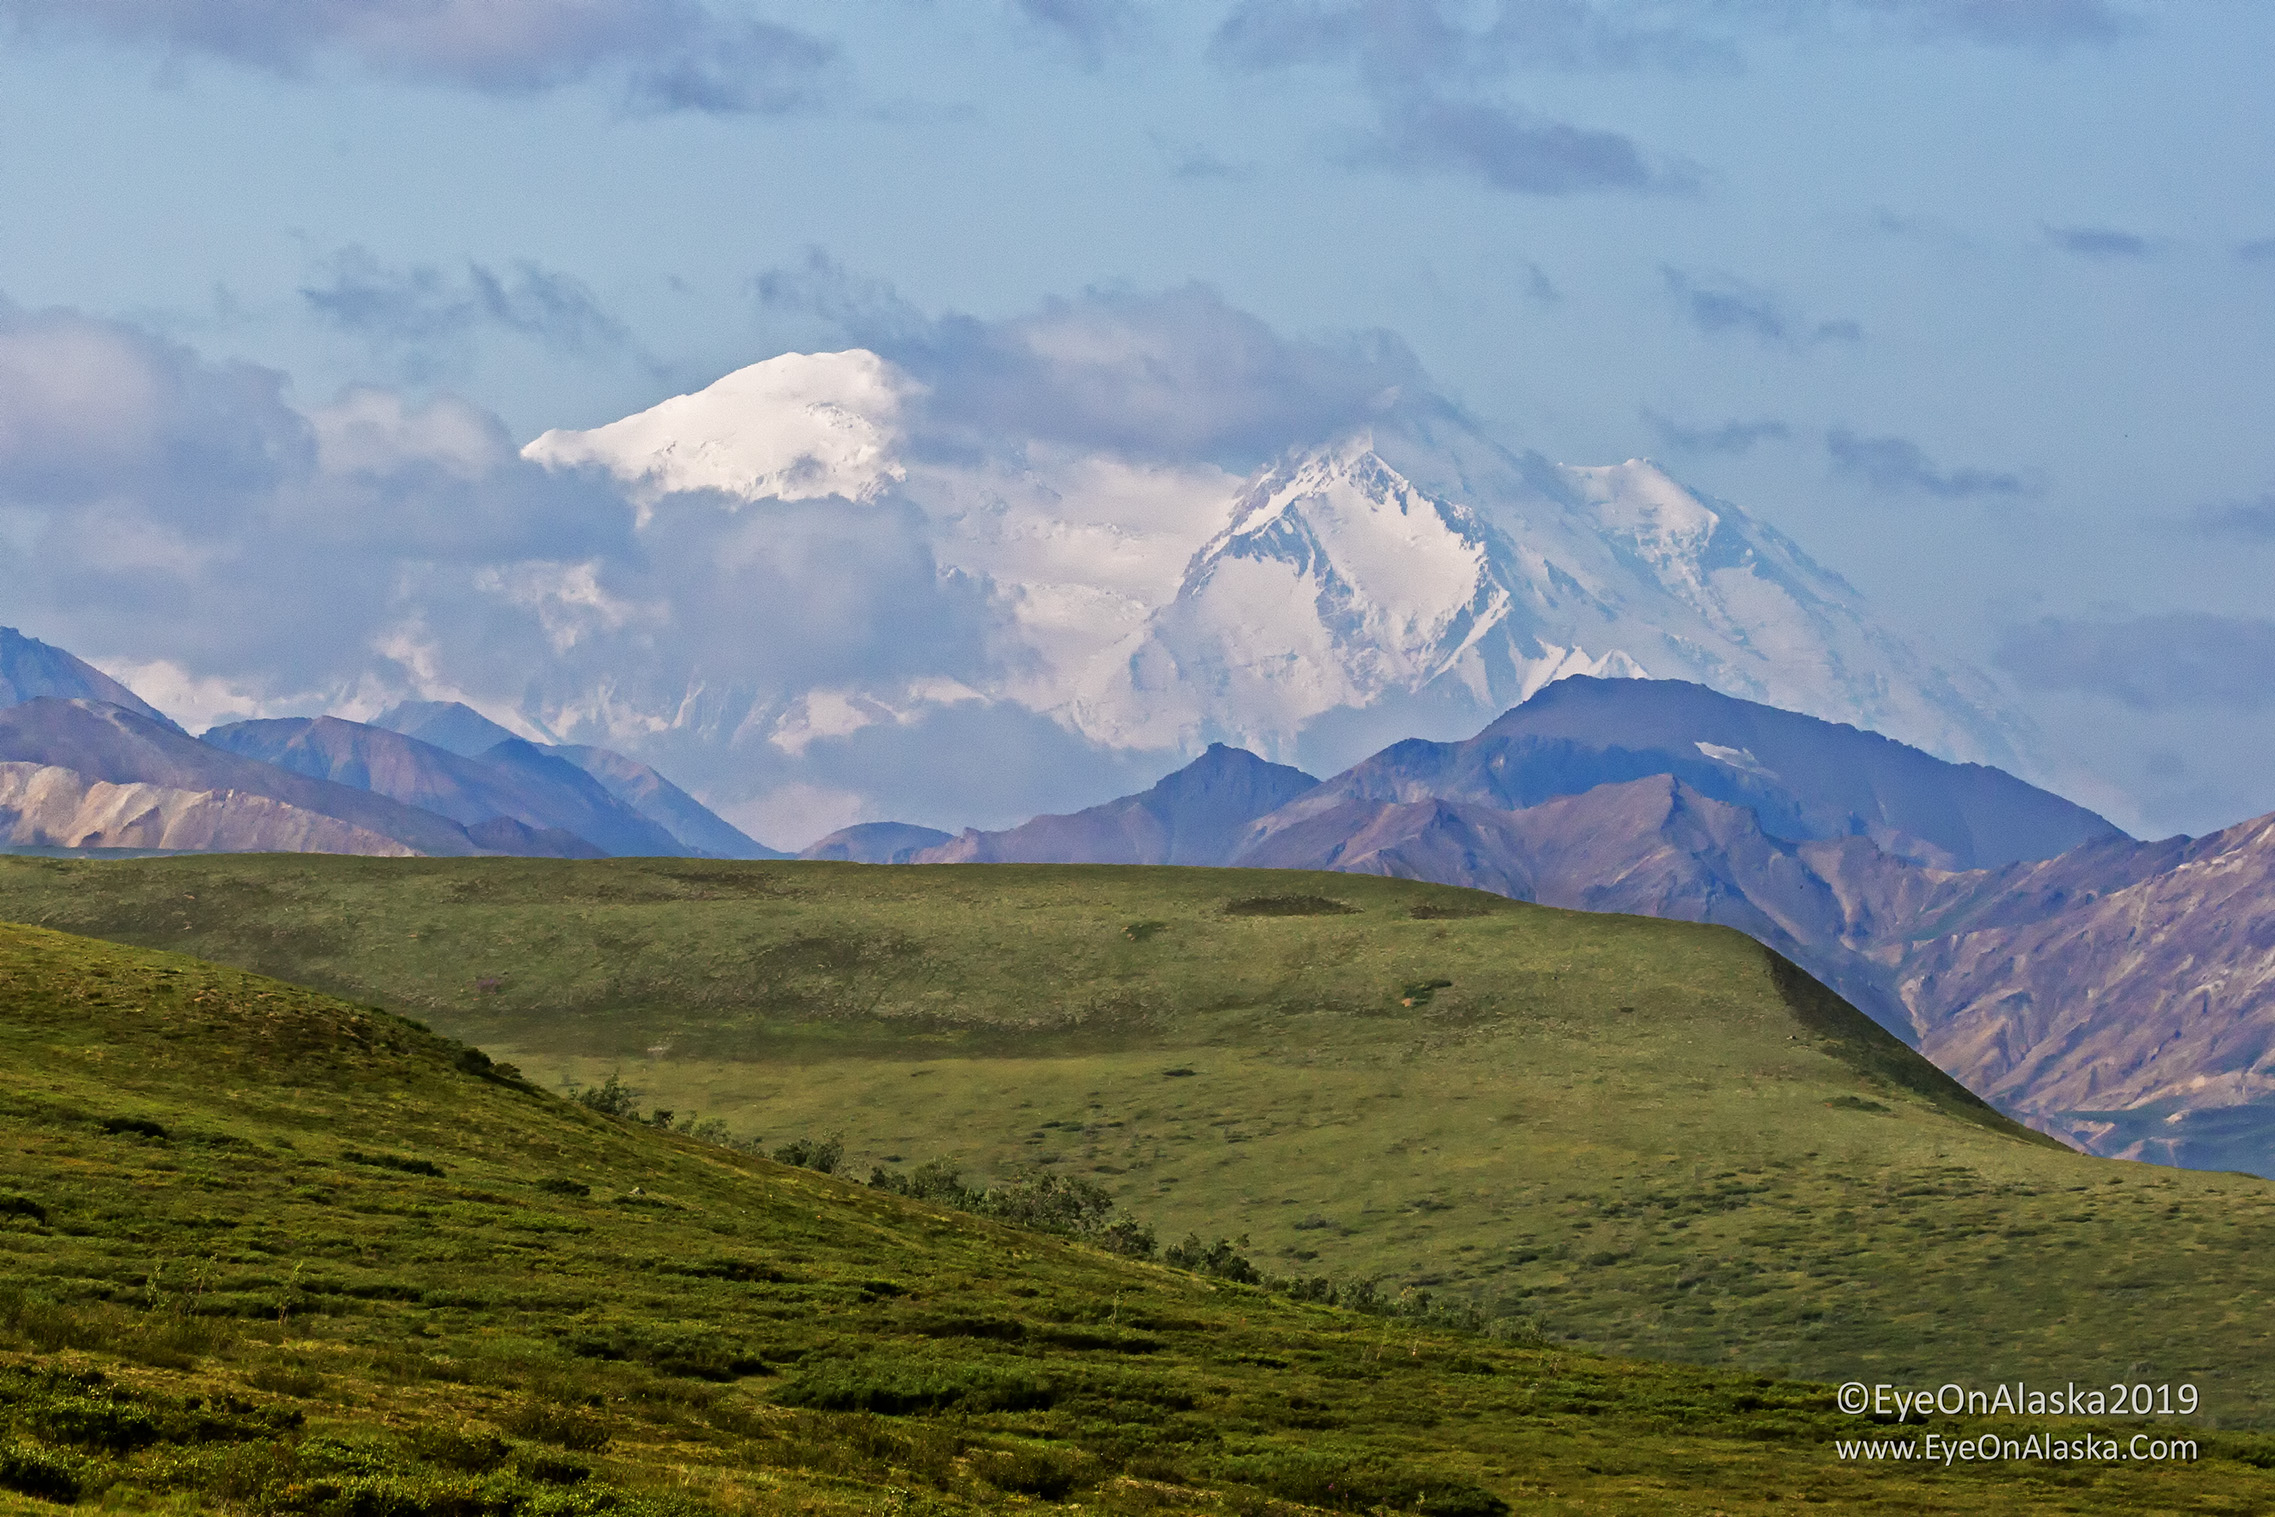 The clouds rapidly clear around Denali and we're treated to this view.